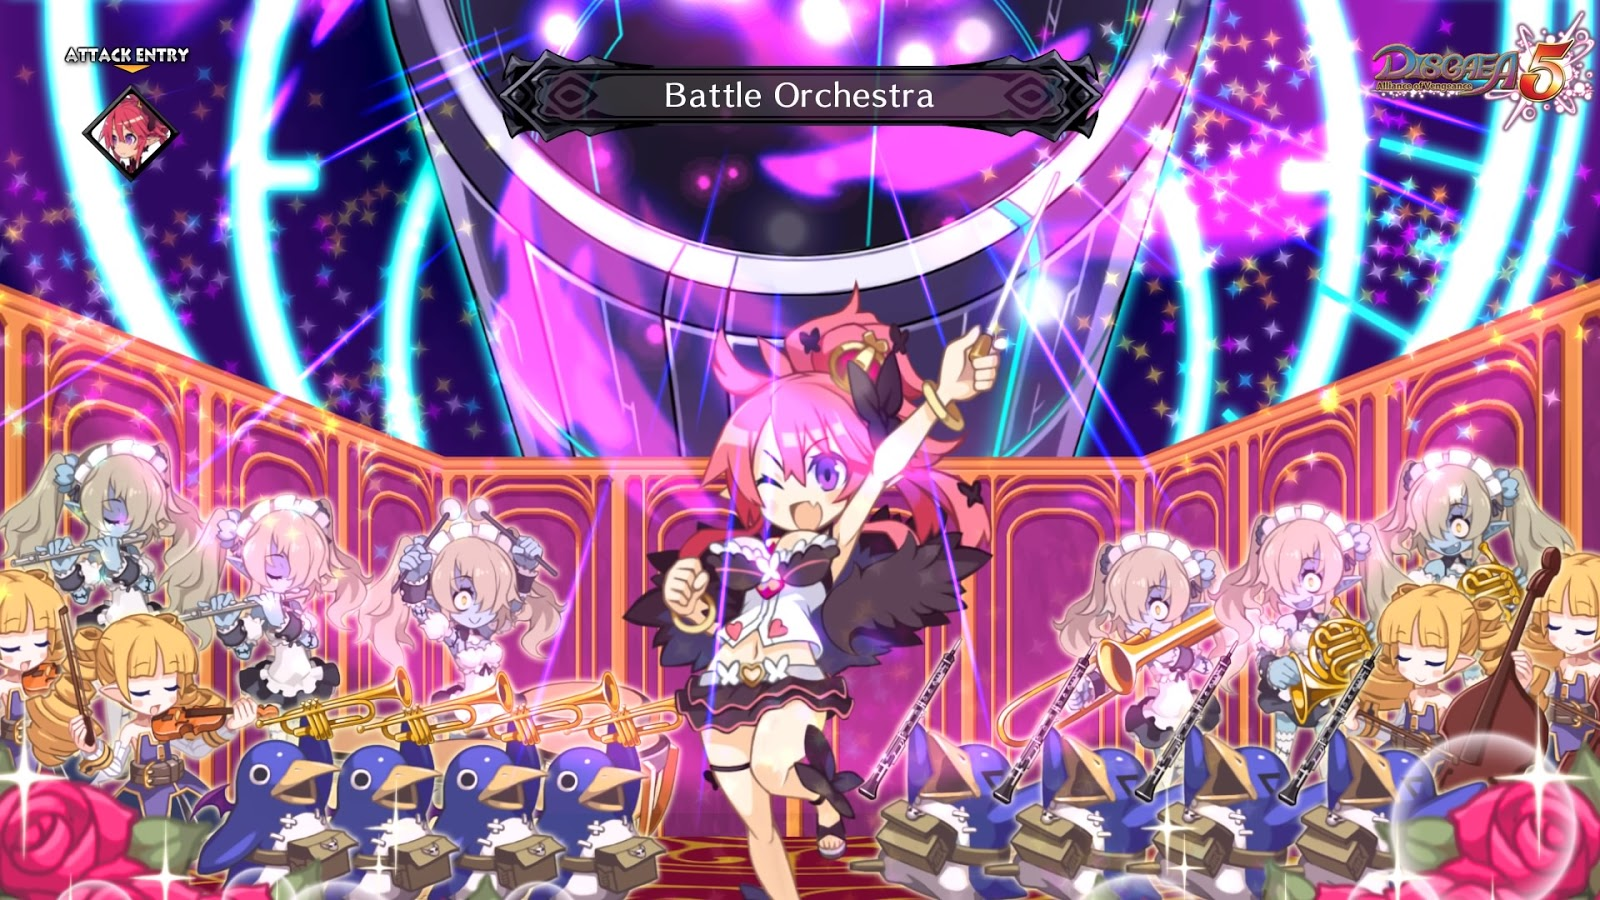 And if I can CRTL + B right here, I will say that Disgaea 5: Alliance of  Vengeance might possibly be my favorite one since the first, if not overall.